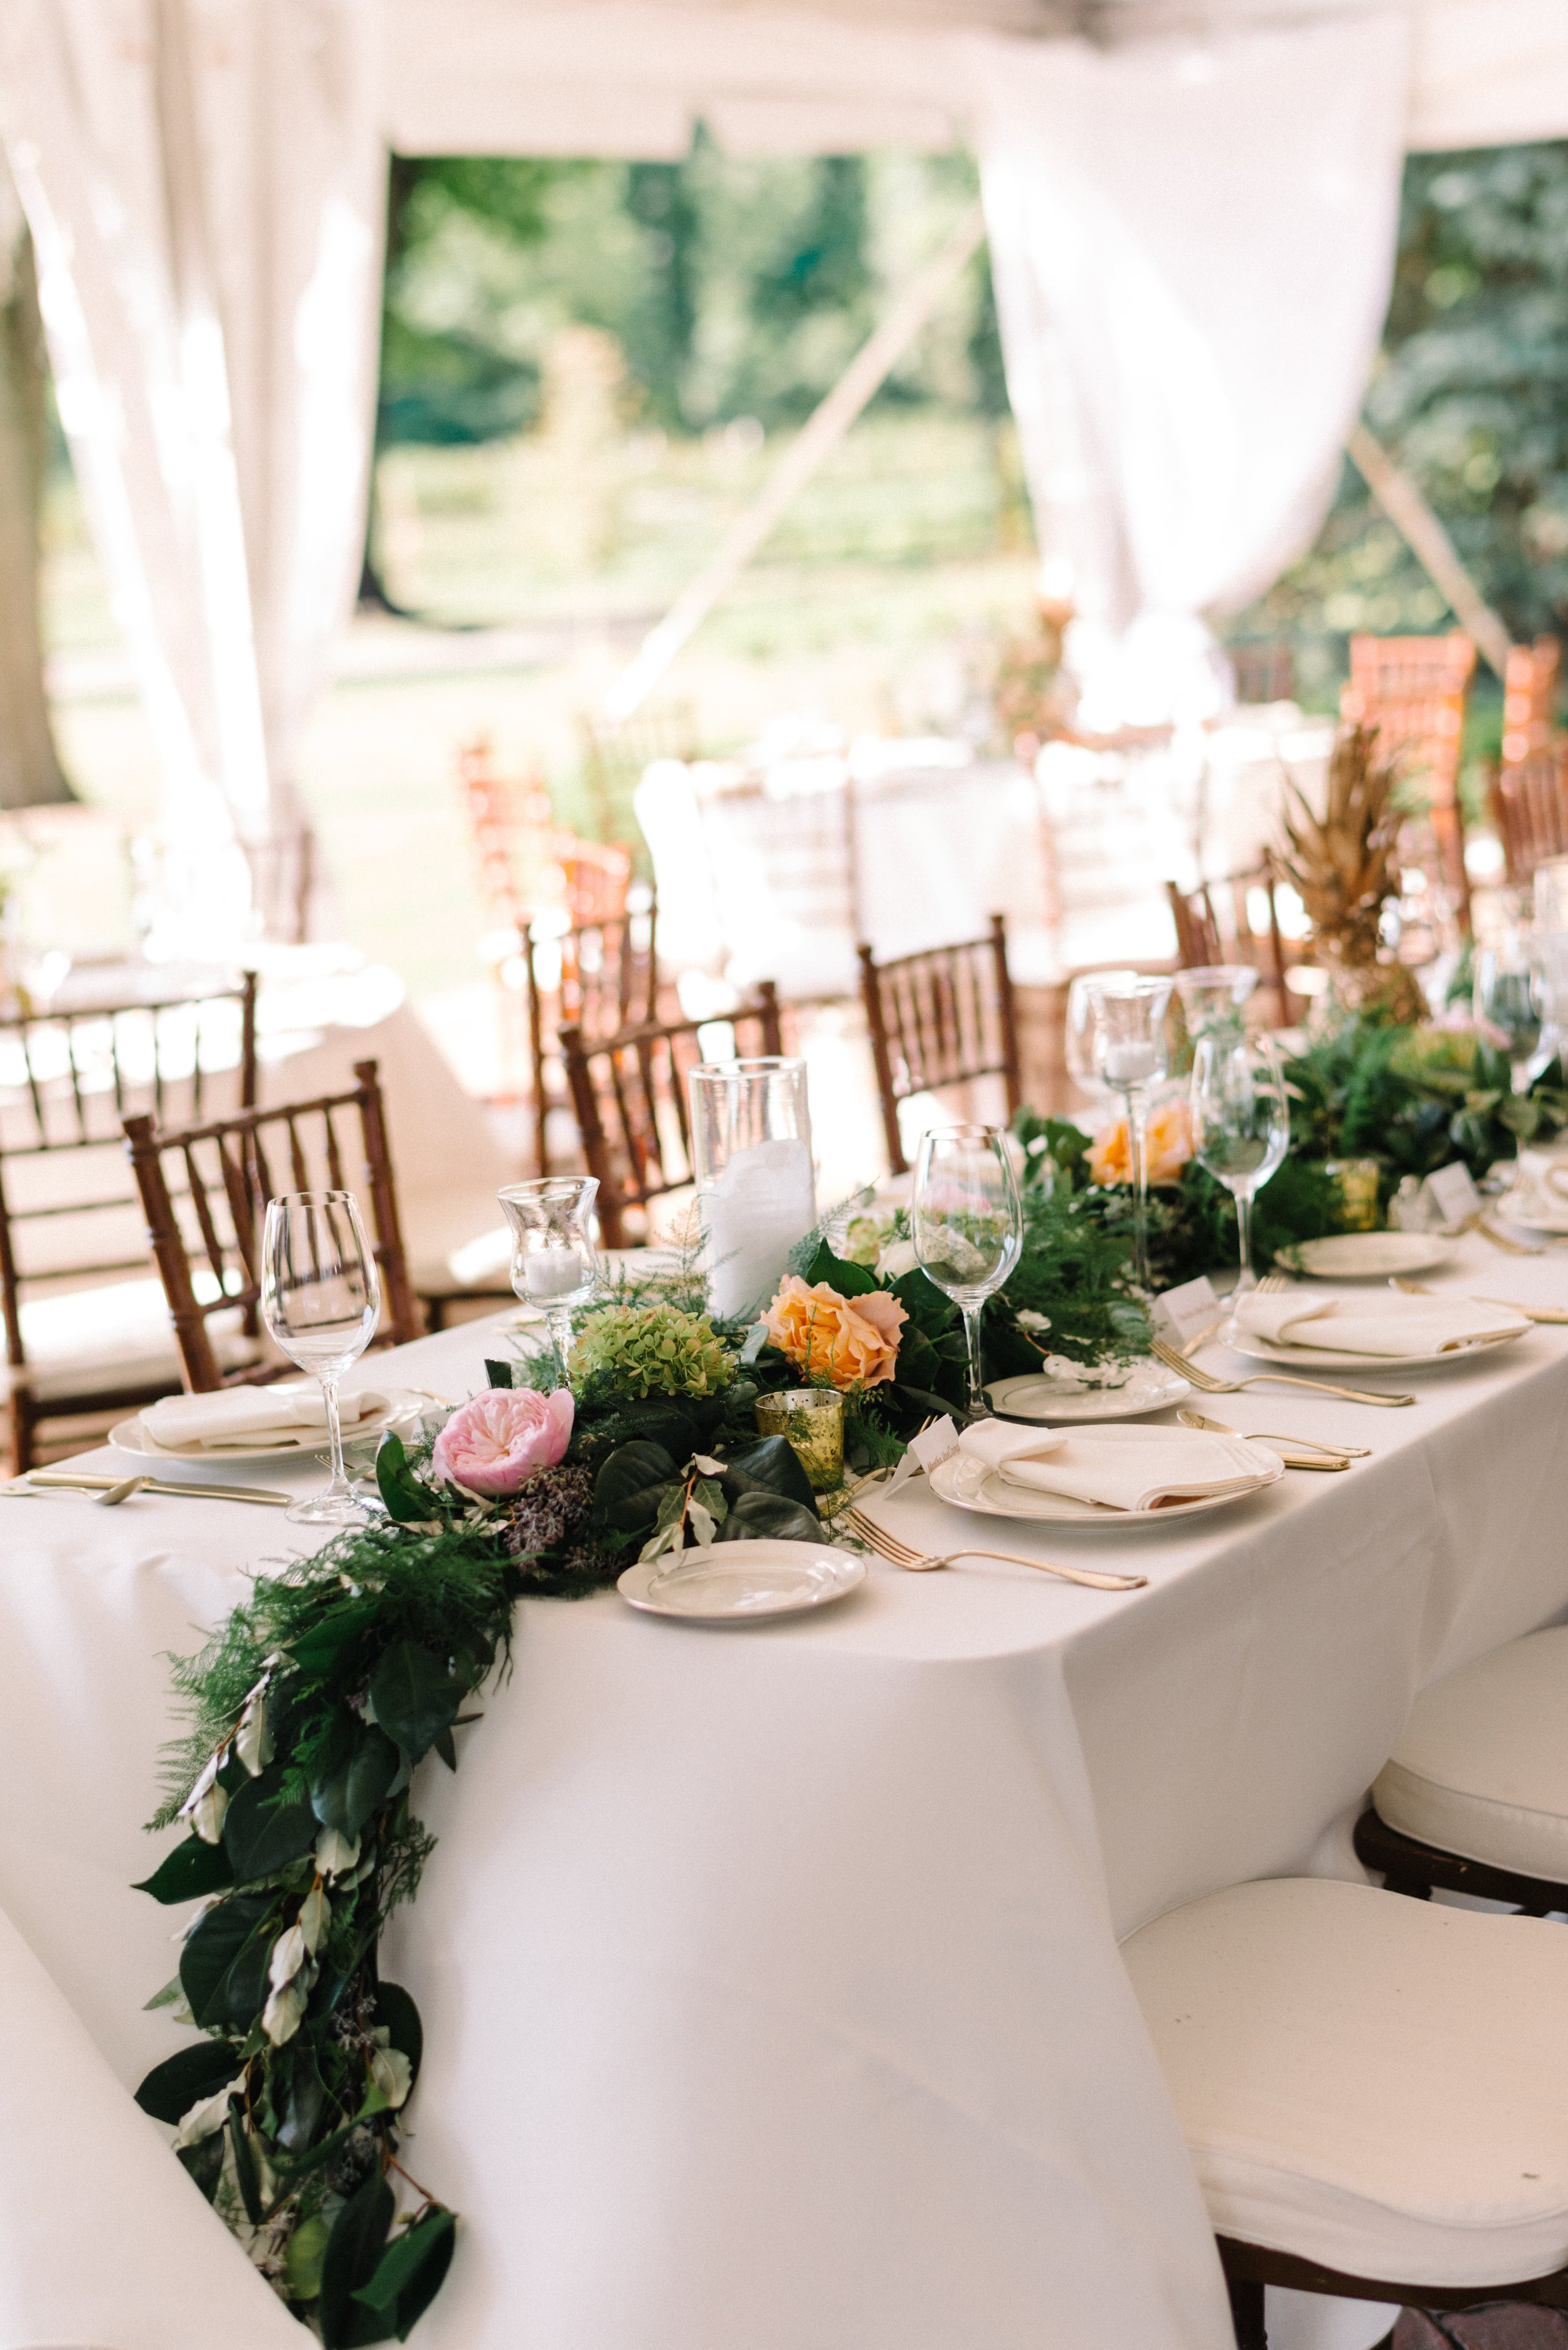 A Garden Party Florist, Inn at Fernbrook Farms, Michelle Lange Photography, Blush, Table Decor, Garland